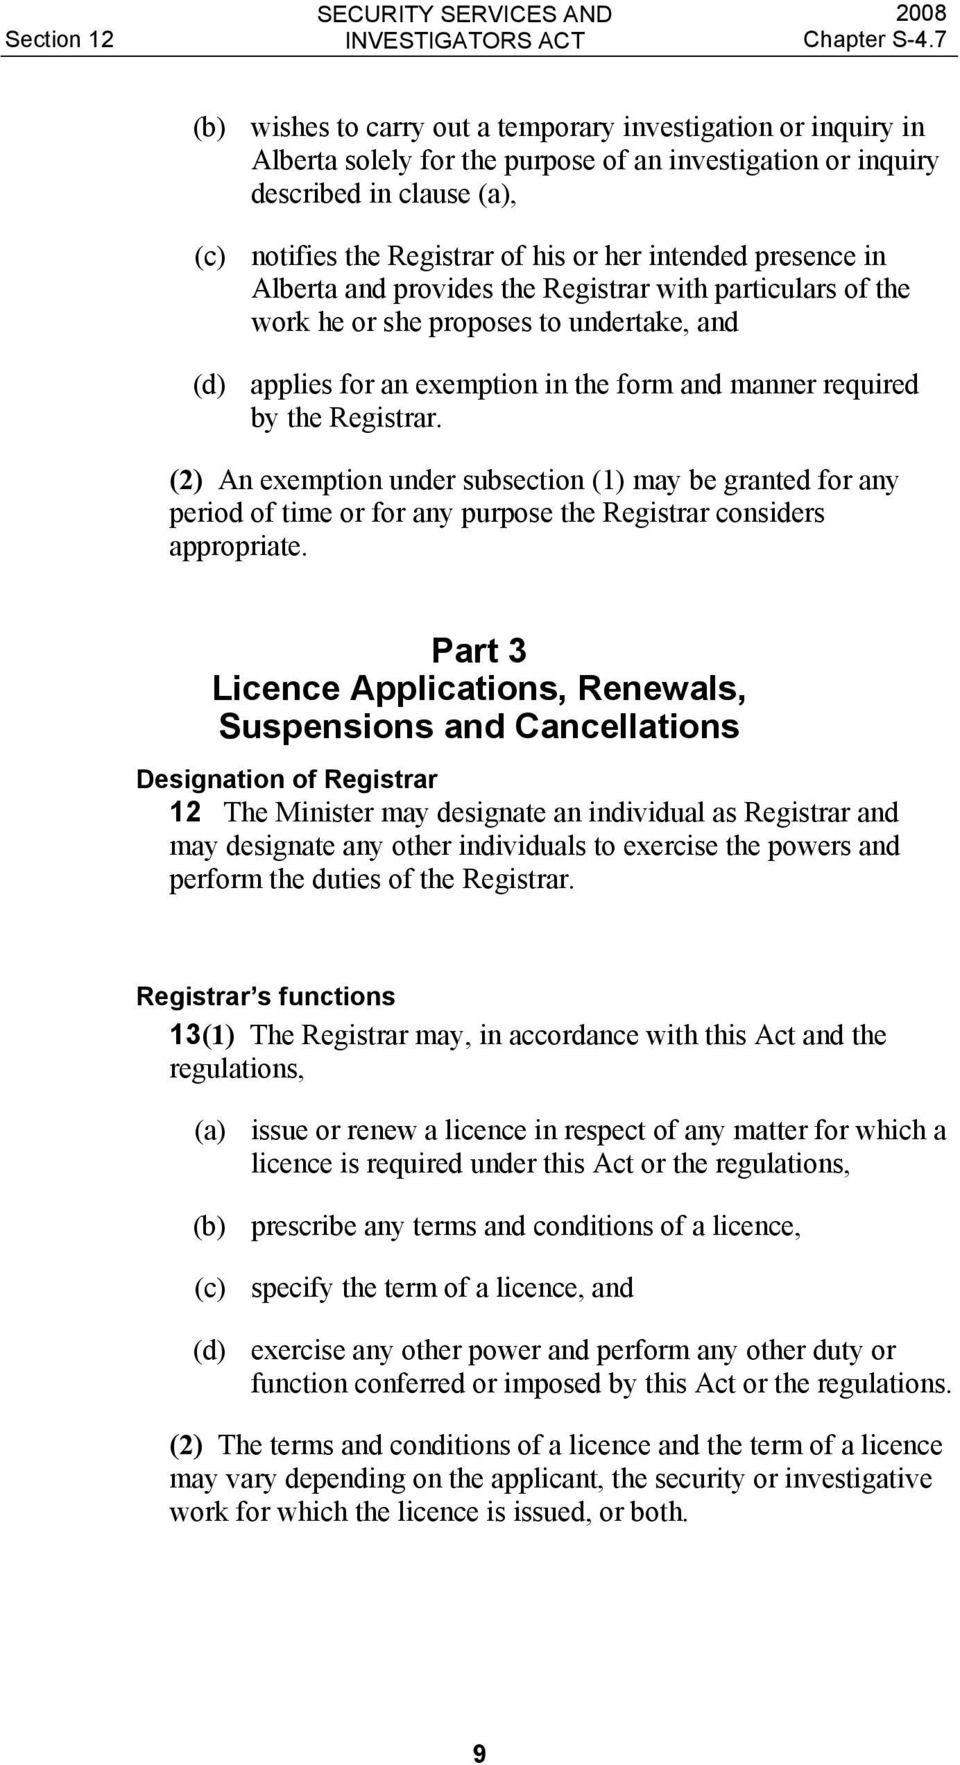 Registrar. (2) An exemption under subsection (1) may be granted for any period of time or for any purpose the Registrar considers appropriate.